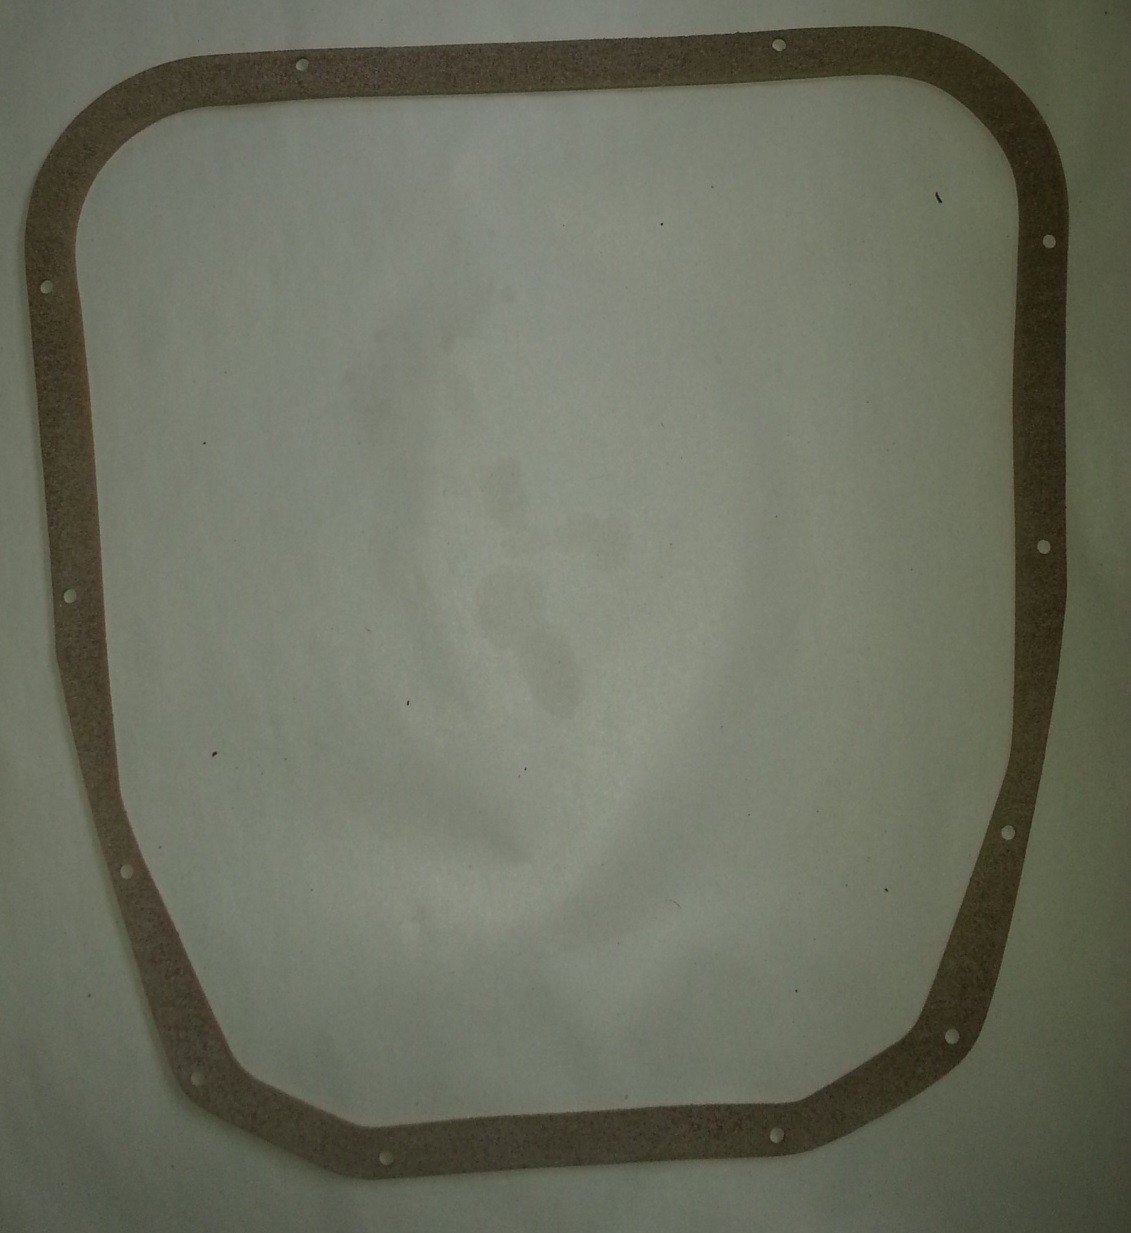 Transom Gaskets — Fit Deep Transoms